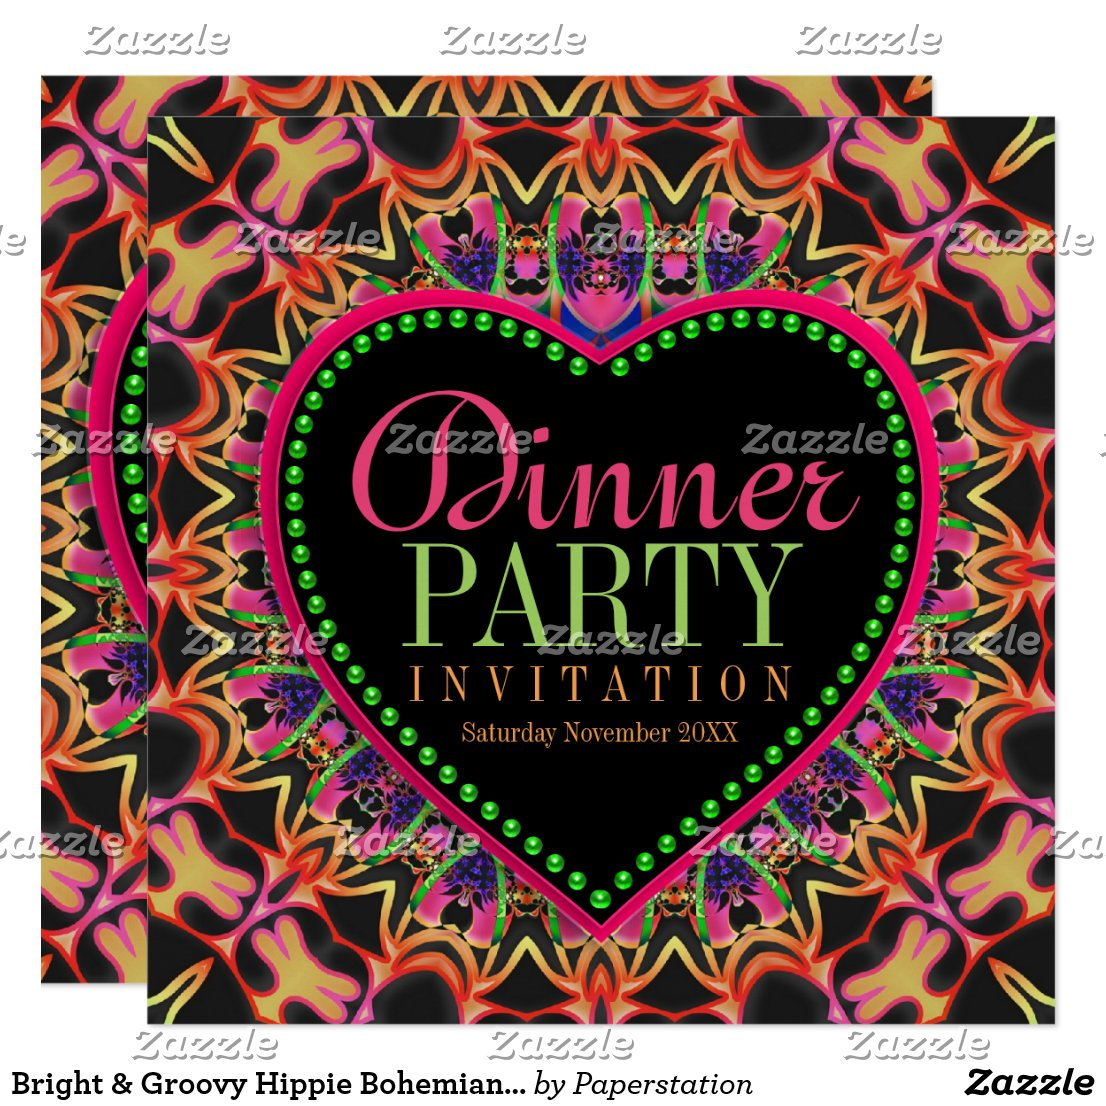 Bright & Groovy Hippie Bohemian Dinner Party Card by Paperstation